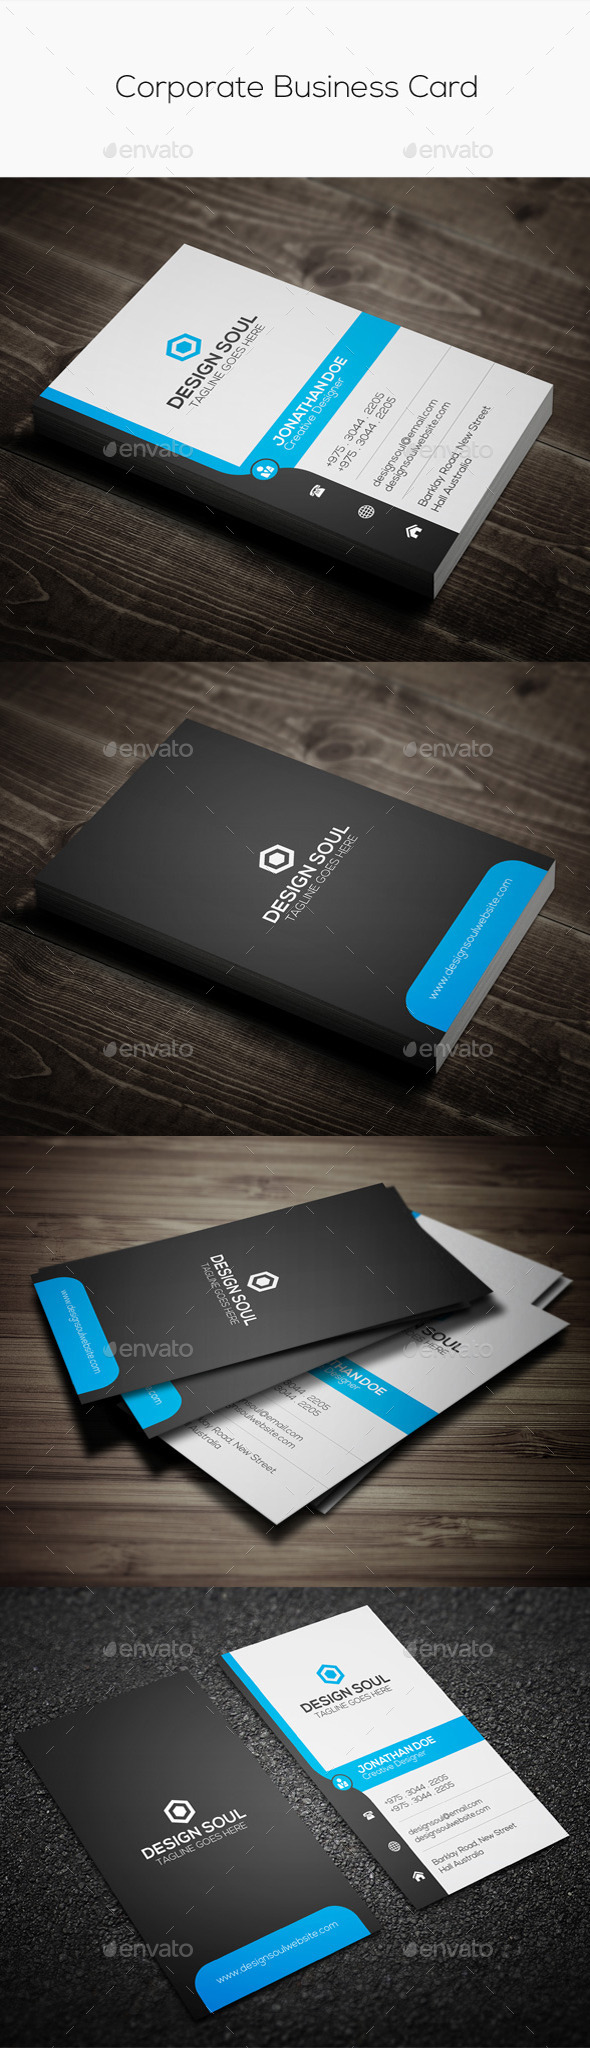 GraphicRiver Corporate Business Card 9104809